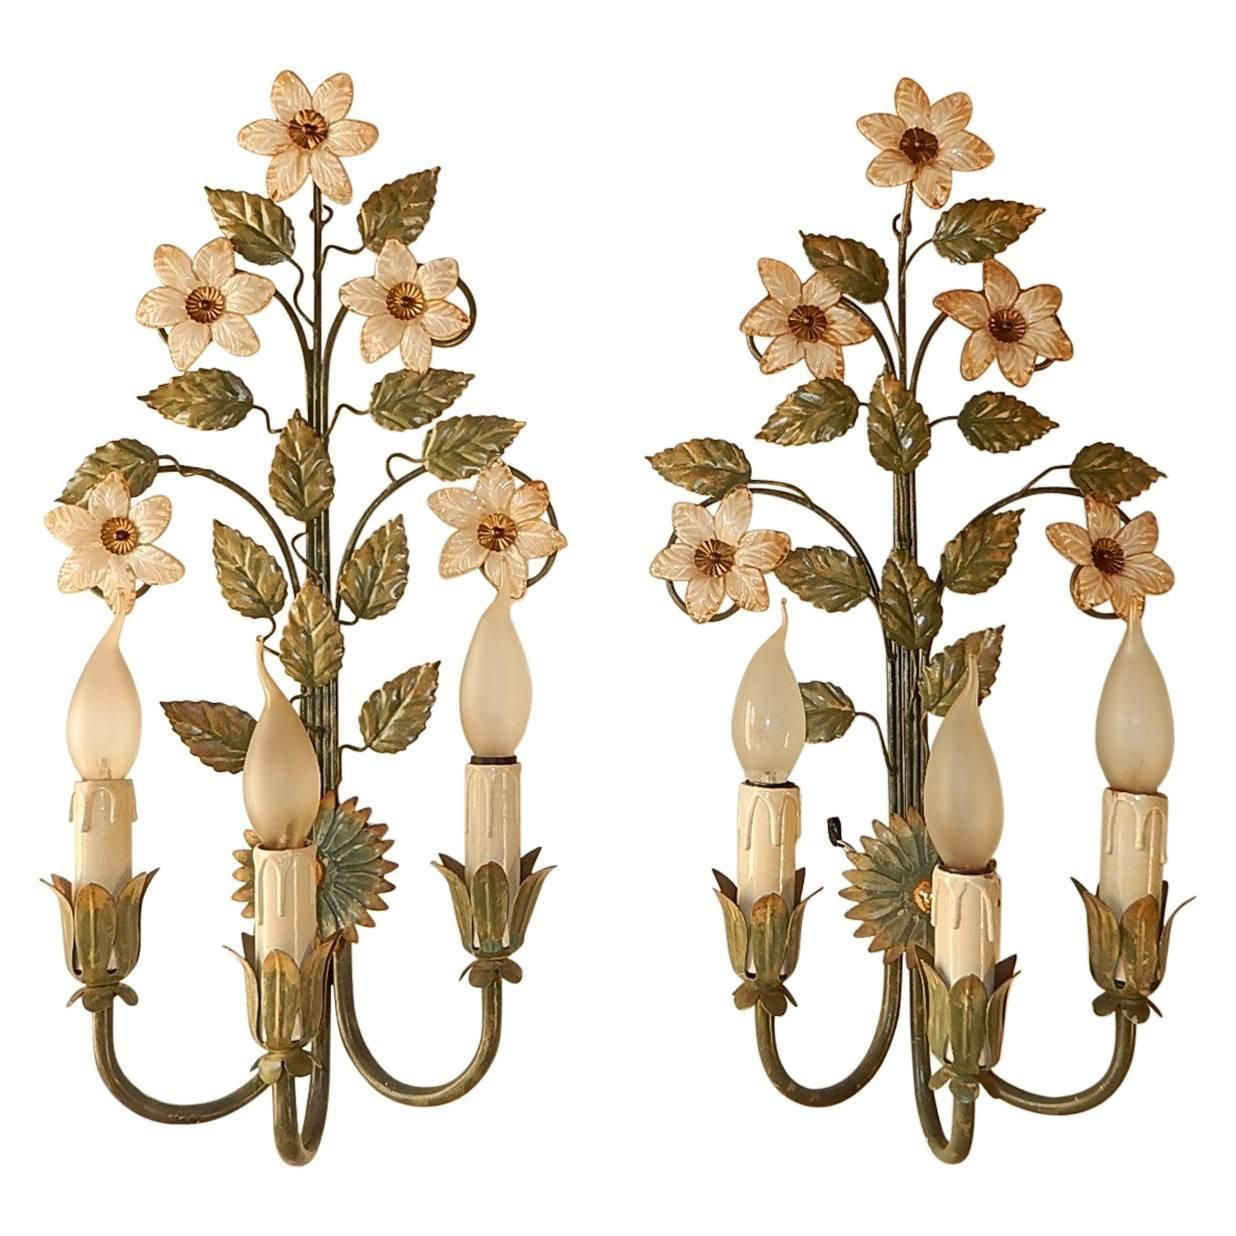 1950 Tole Three-Light Murano Flowers Sconces | Sconces ... on Candle Wall Sconces With Flowers id=47834